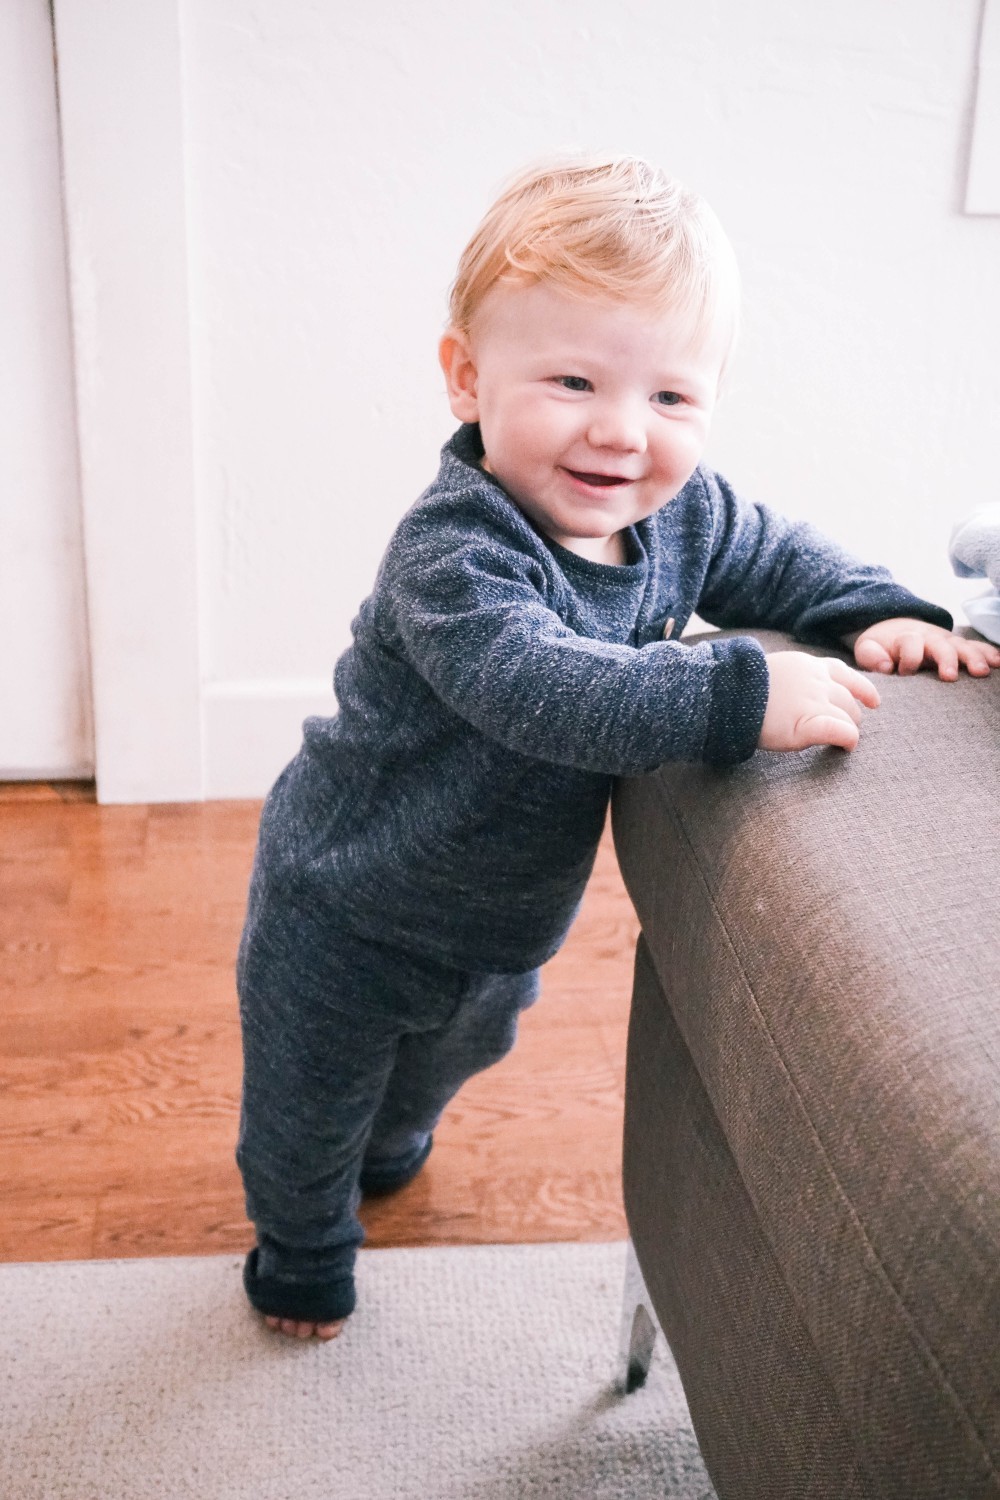 Carter's Baby-JCPenney-Baby Boy Clothes Under $30-Fall Fashion for Baby-Baby Clothing Sale-Have Need Want 13